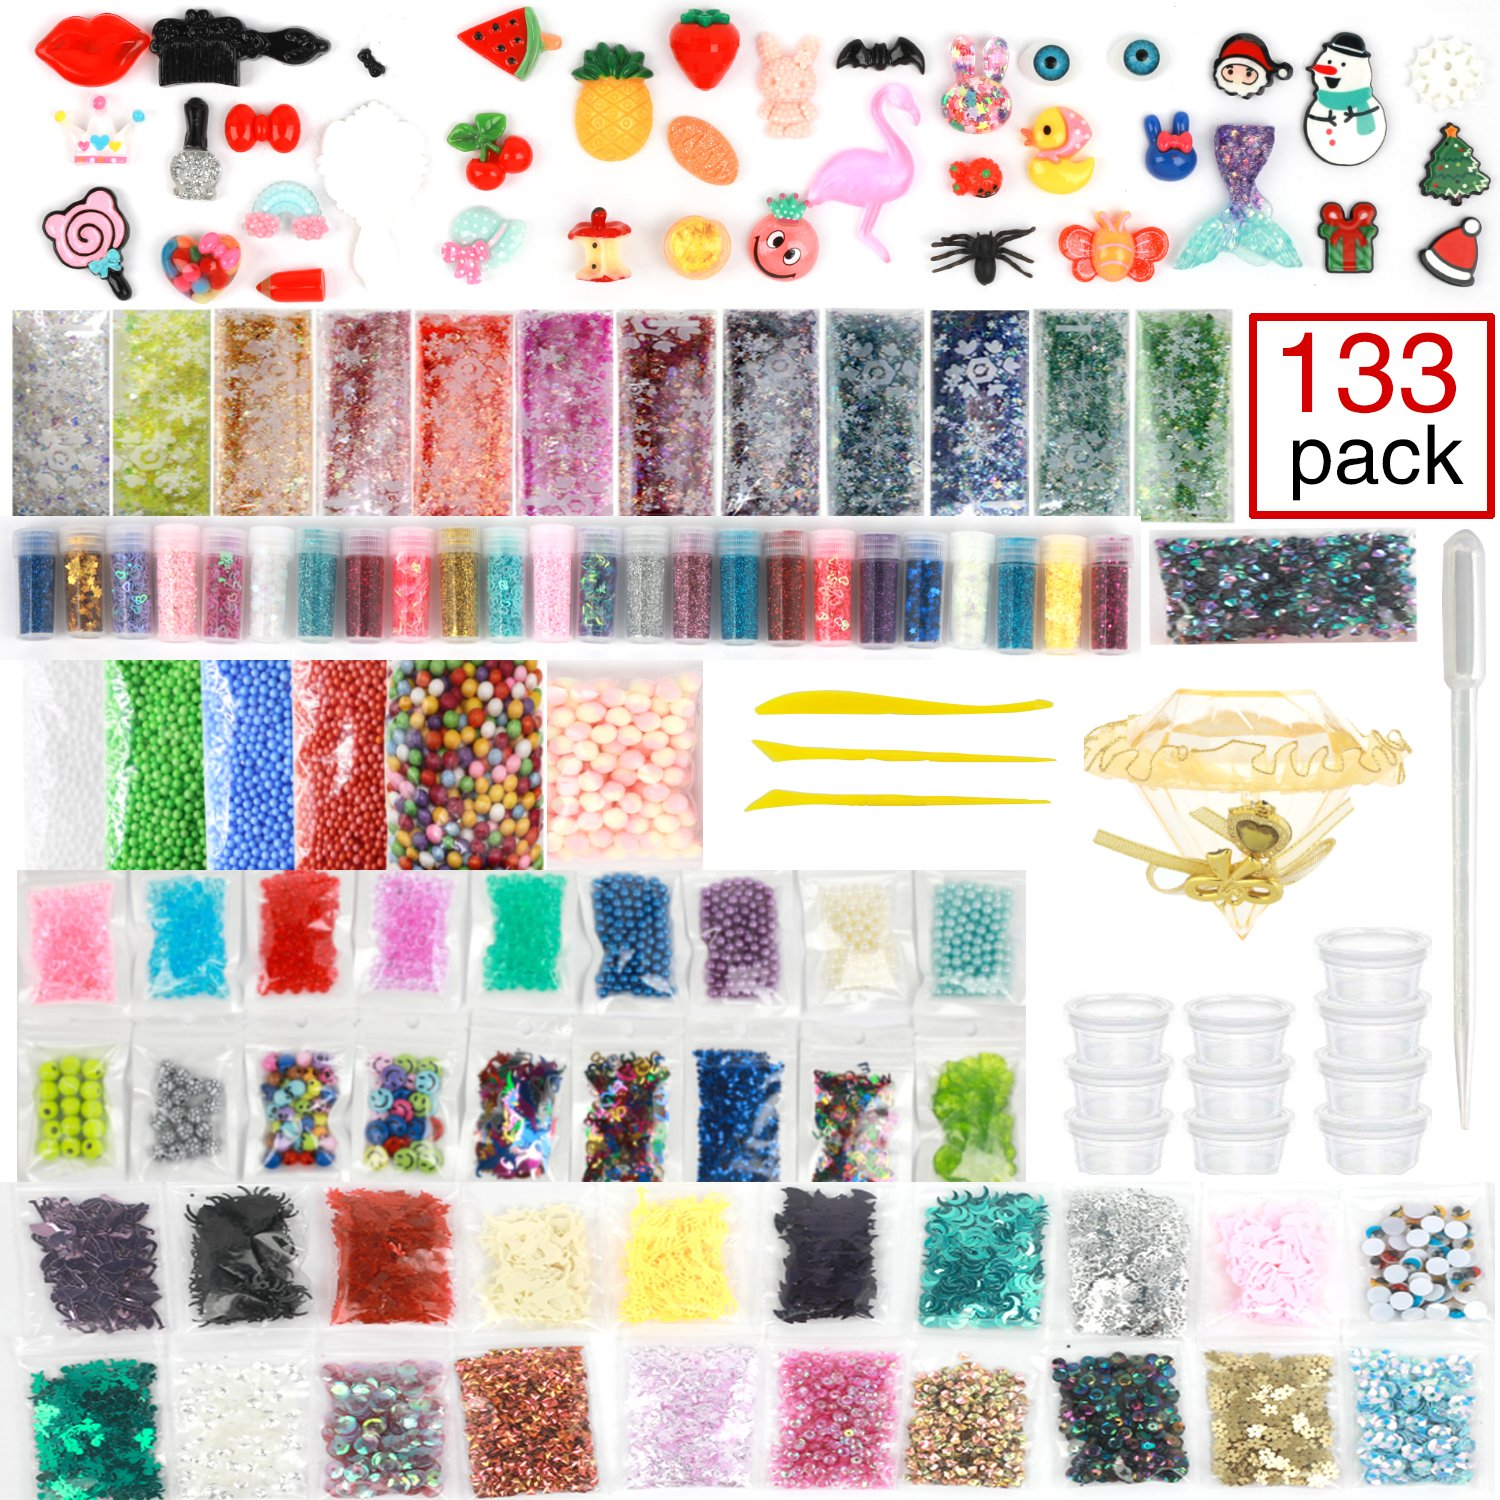 Slime Supplies kit, 133 Pack Slime Kits Include Fishbowl Beads, Pearl, Floam Beads, Glitter Jars, Confetti, Slime Charms, Slime Tools, Slime Containers, DIY Art Craft for Homemade Slime StarOwl